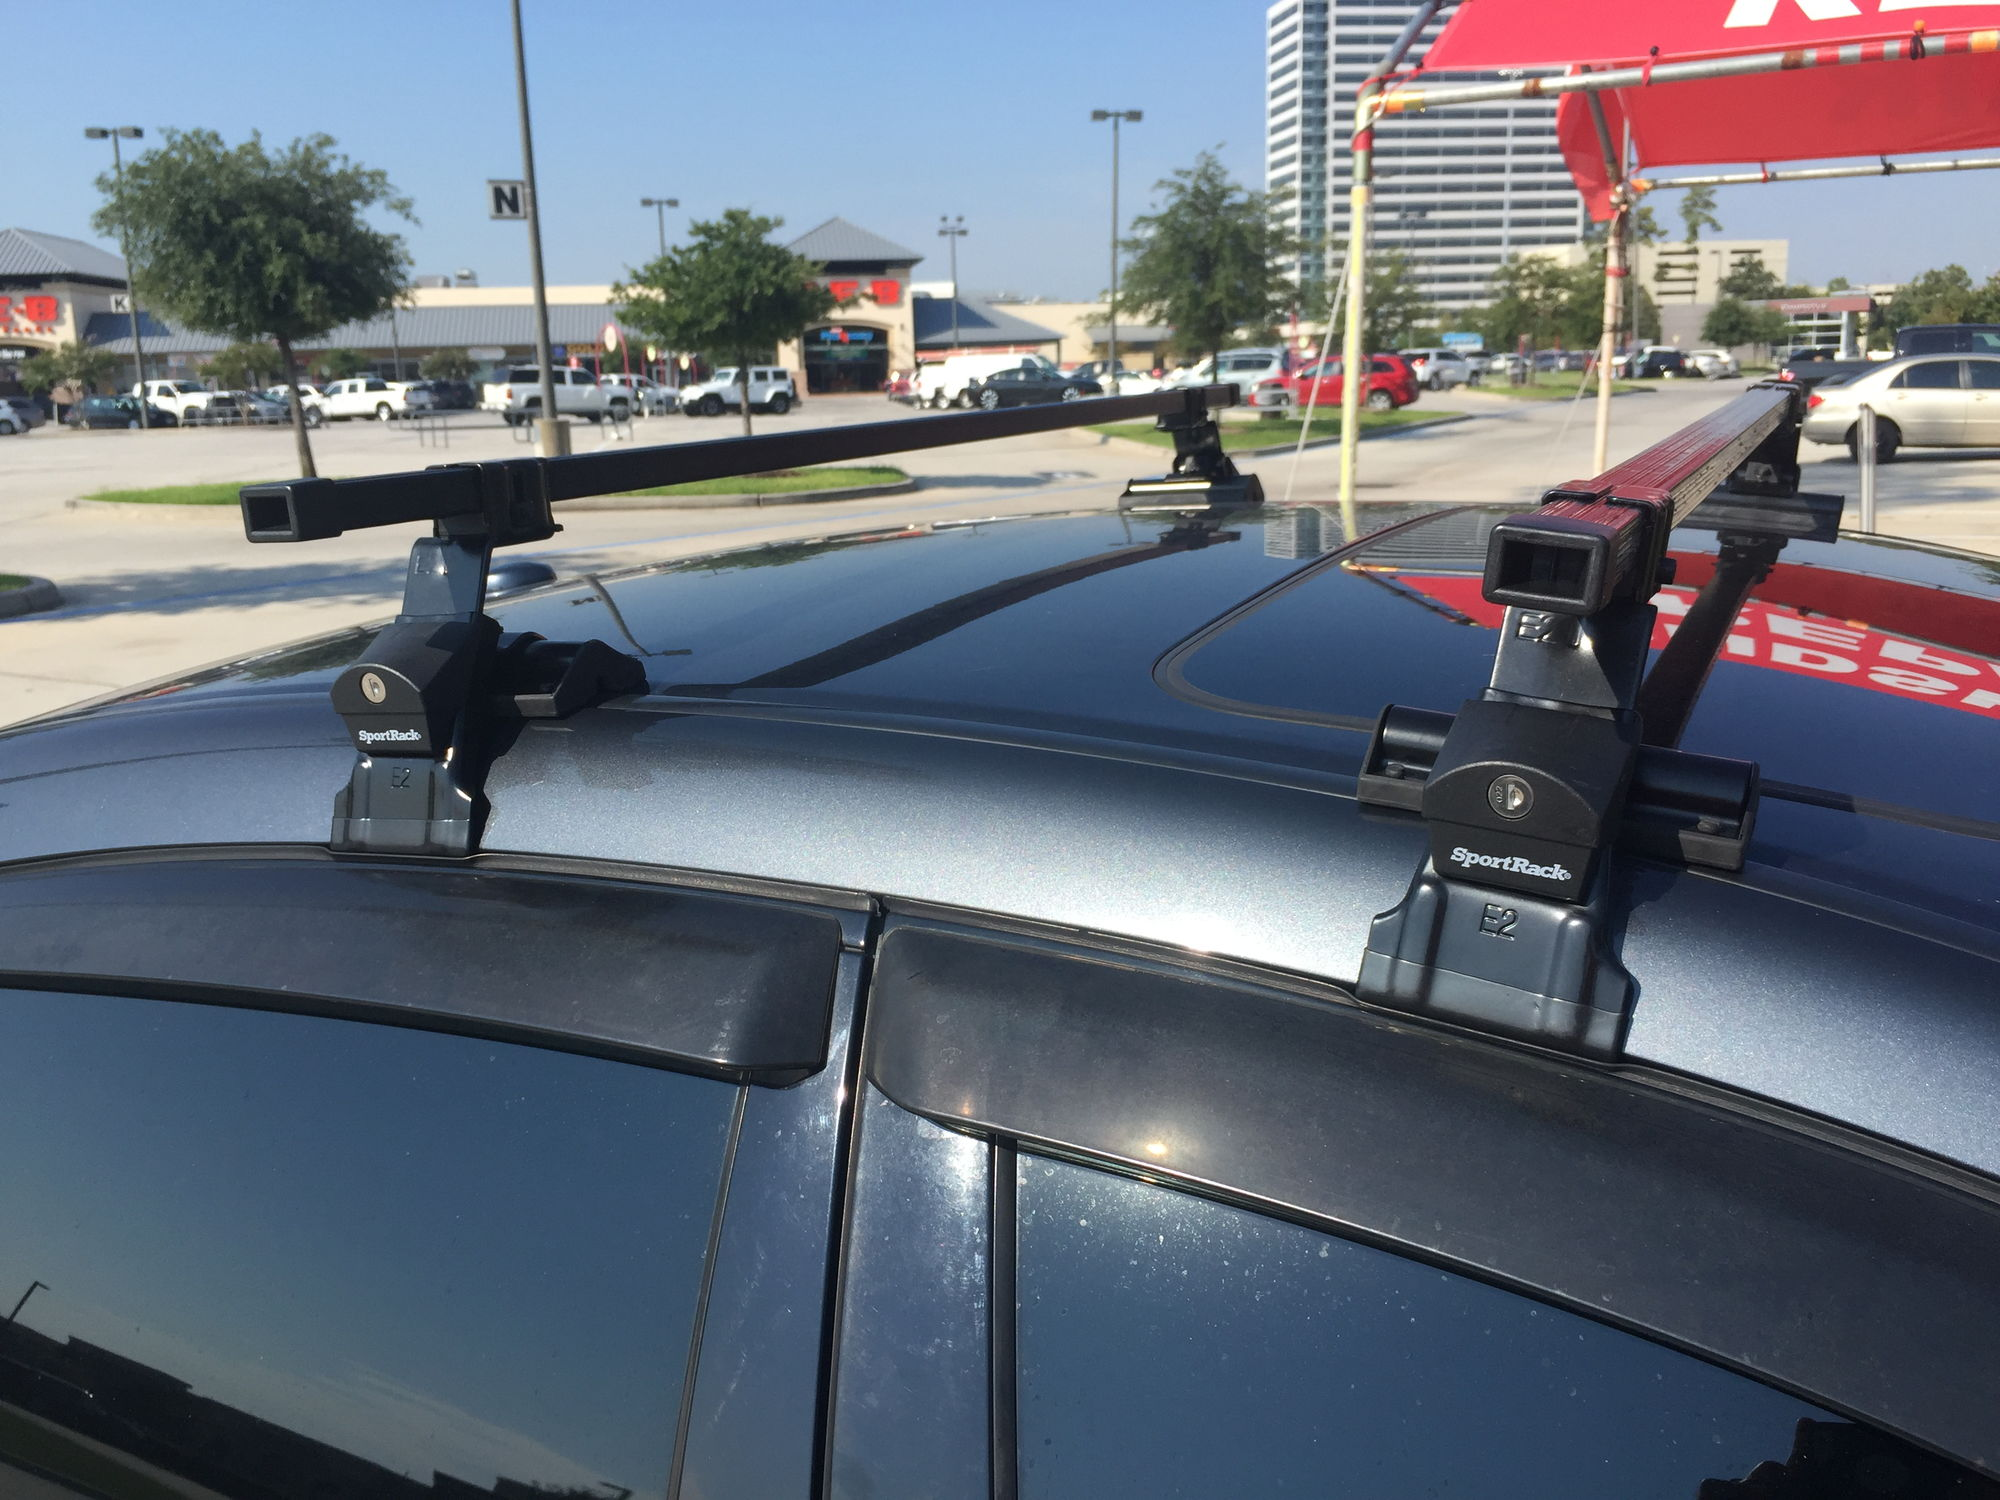 I didn't want to spend $250-500 on a Thule or Yakima so if anybody is on  budget these work.